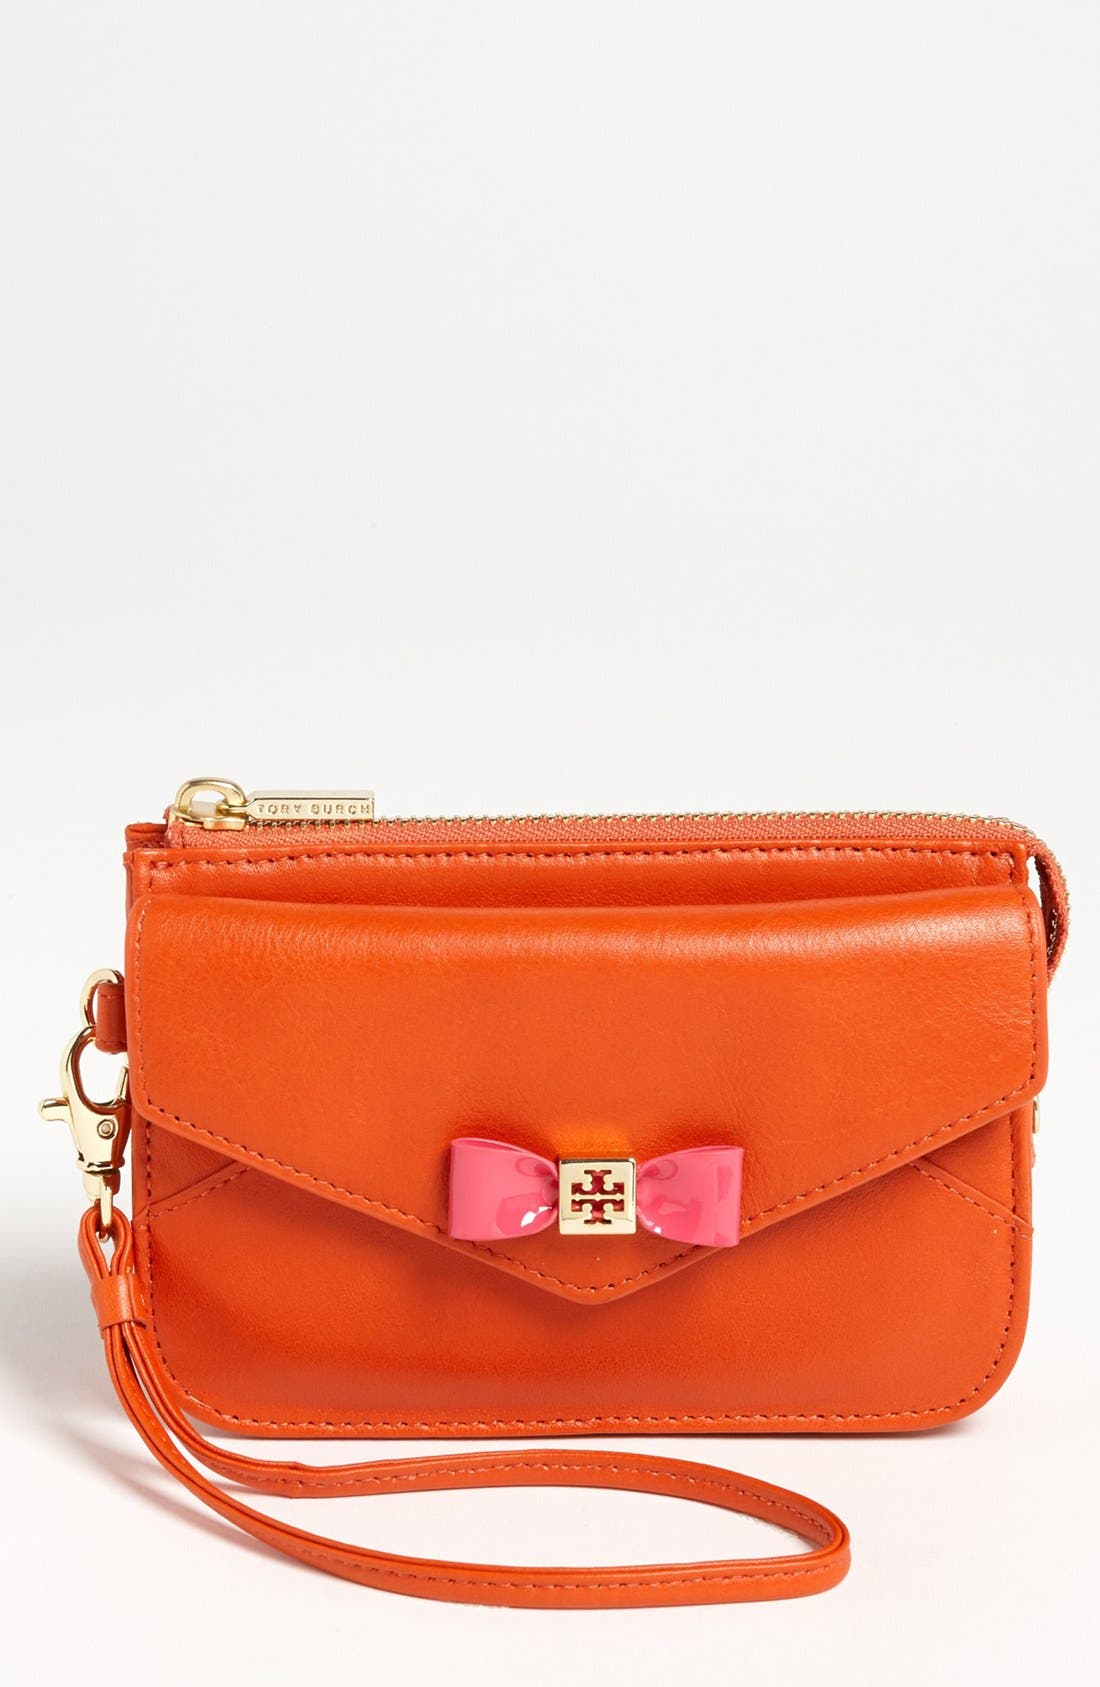 Alternate Image 1 Selected - Tory Burch 'Bow' Smartphone Wristlet